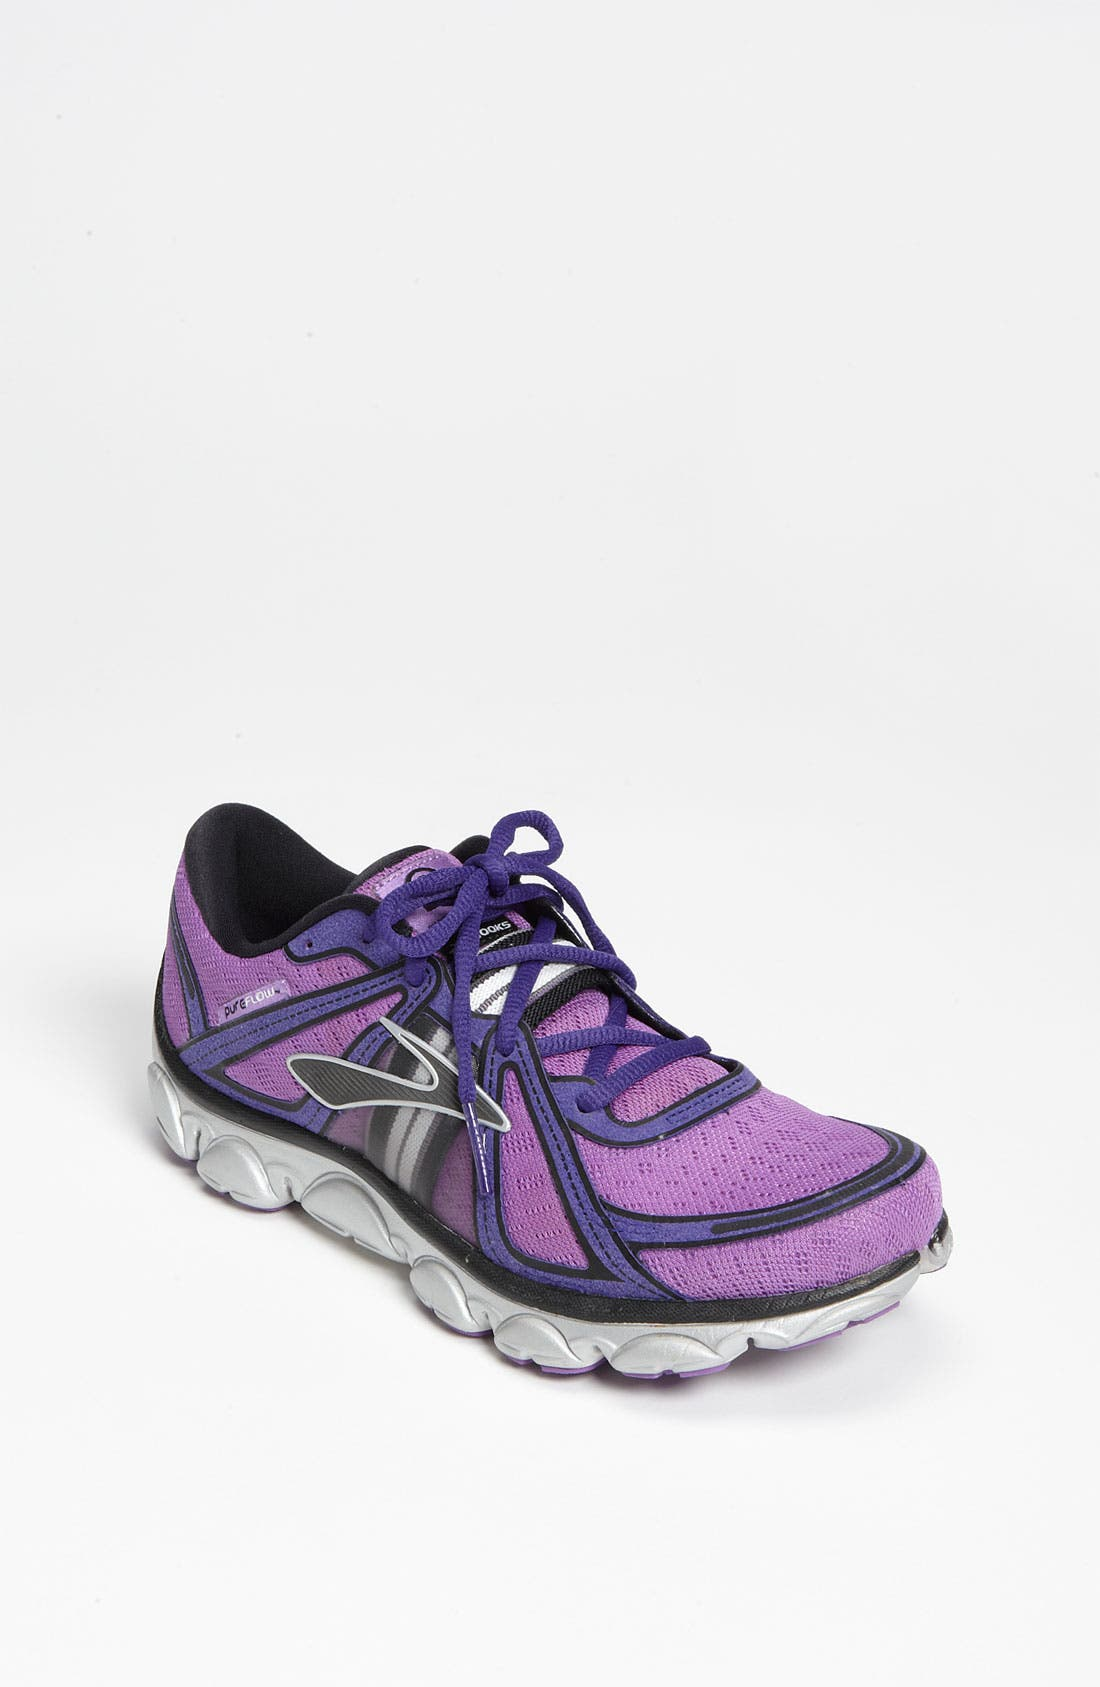 Alternate Image 1 Selected - Brooks 'PureFlow' Running Shoe (Women) (Regular Retail Price: $89.95)